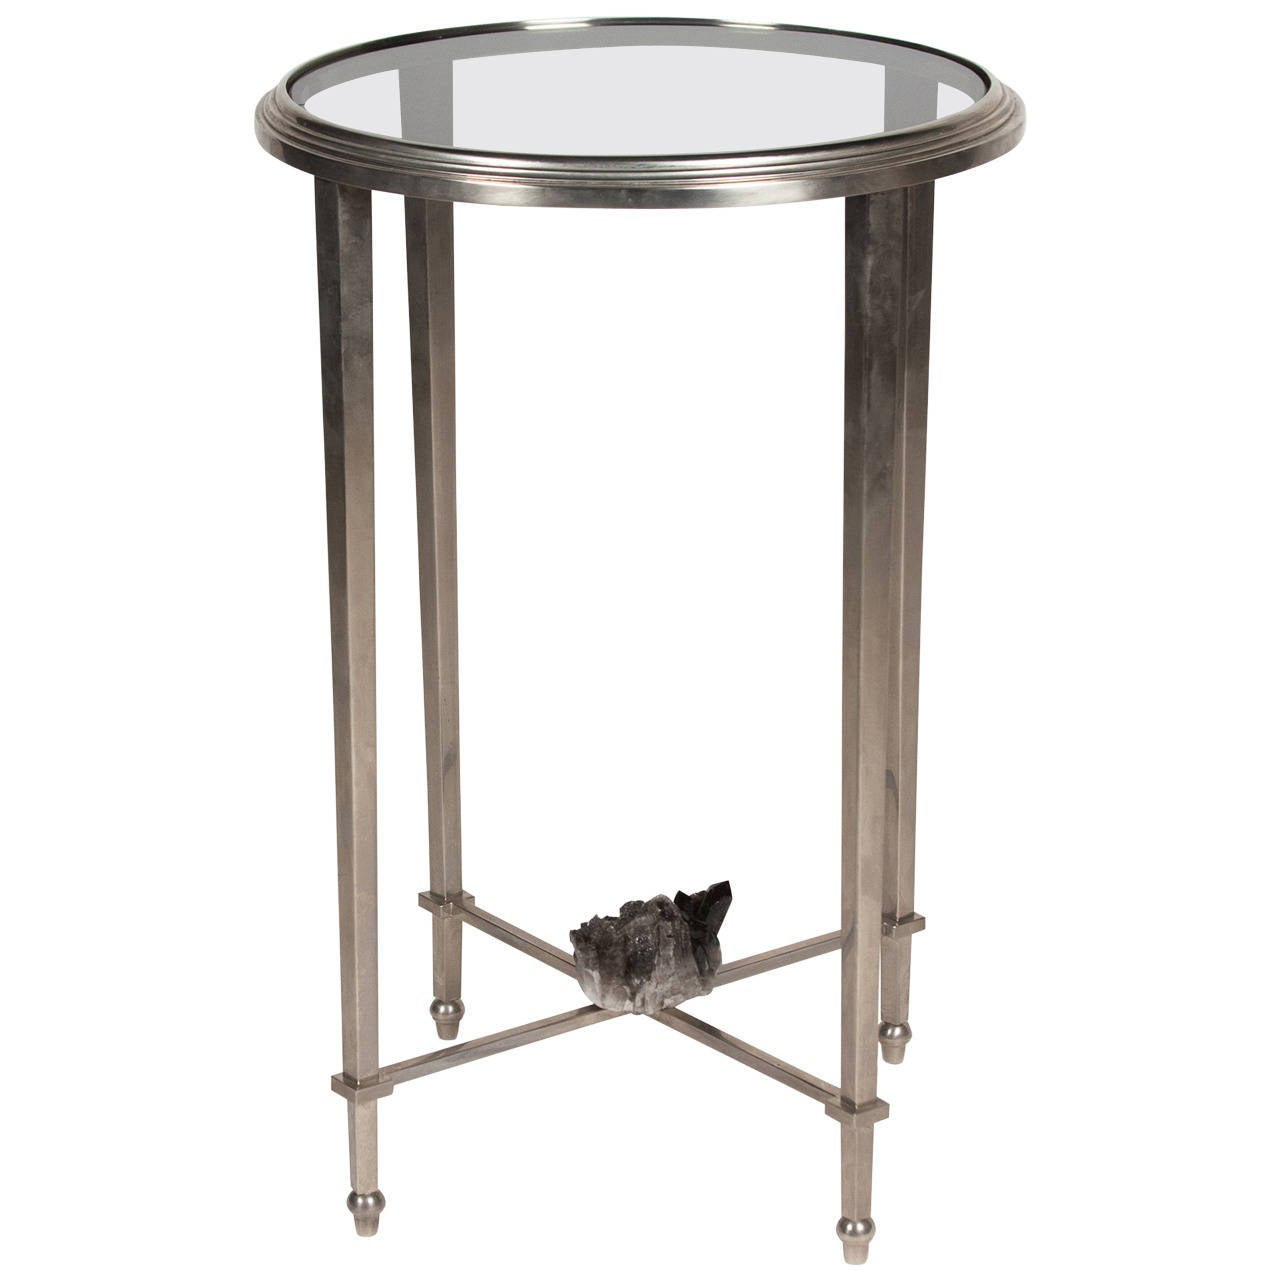 49 Coffee Table Nickel Finish Solid Iron Casters: Geode Mounted Nickel End Table, French, 1970s At 1stdibs